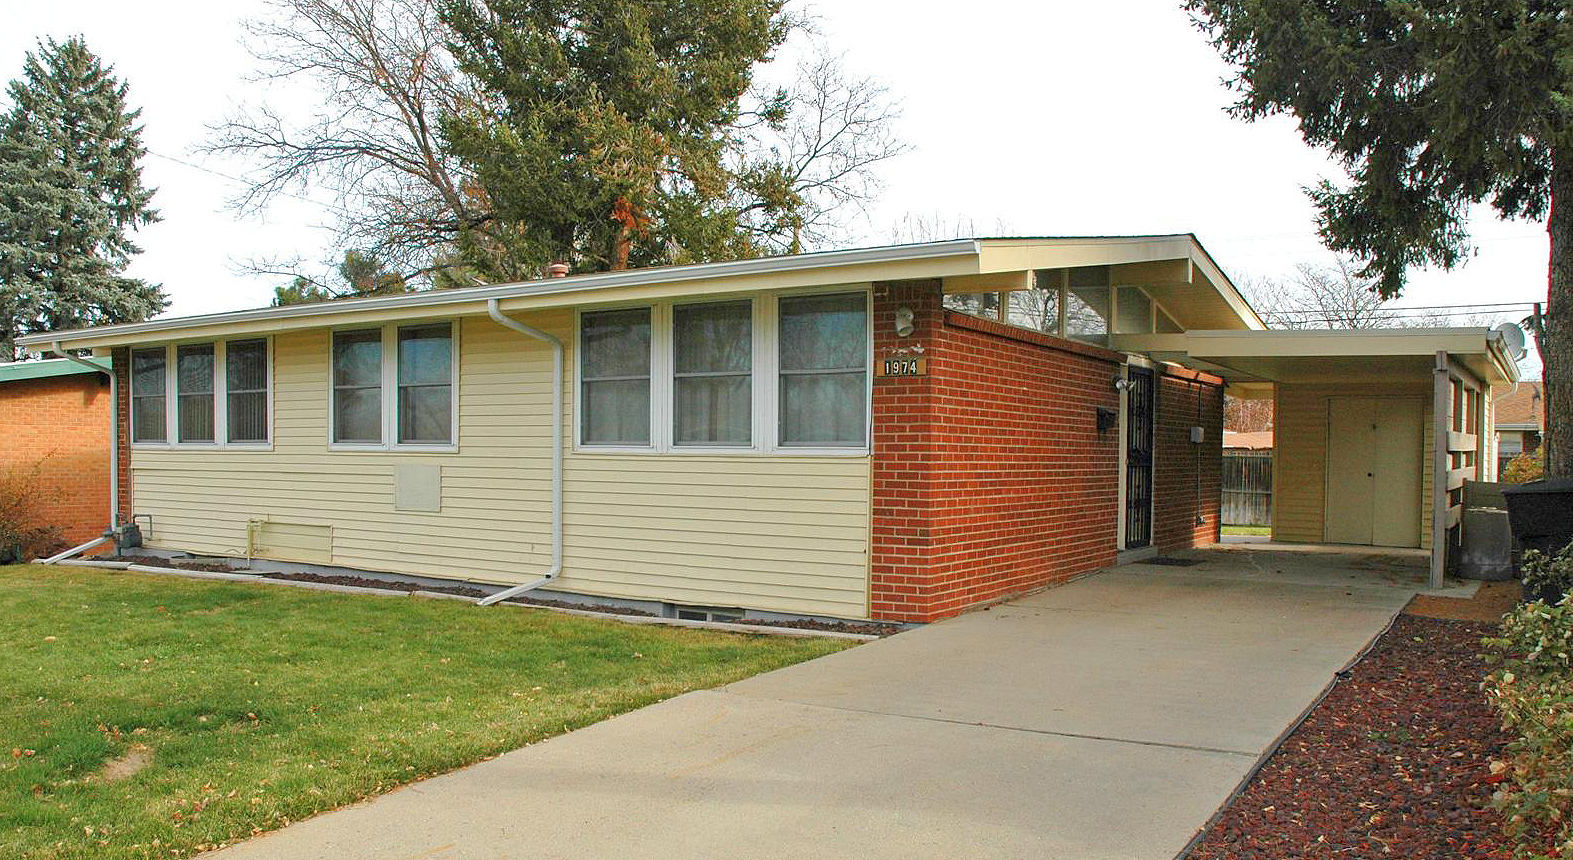 Affordable mid century modern under 225k Century home builders